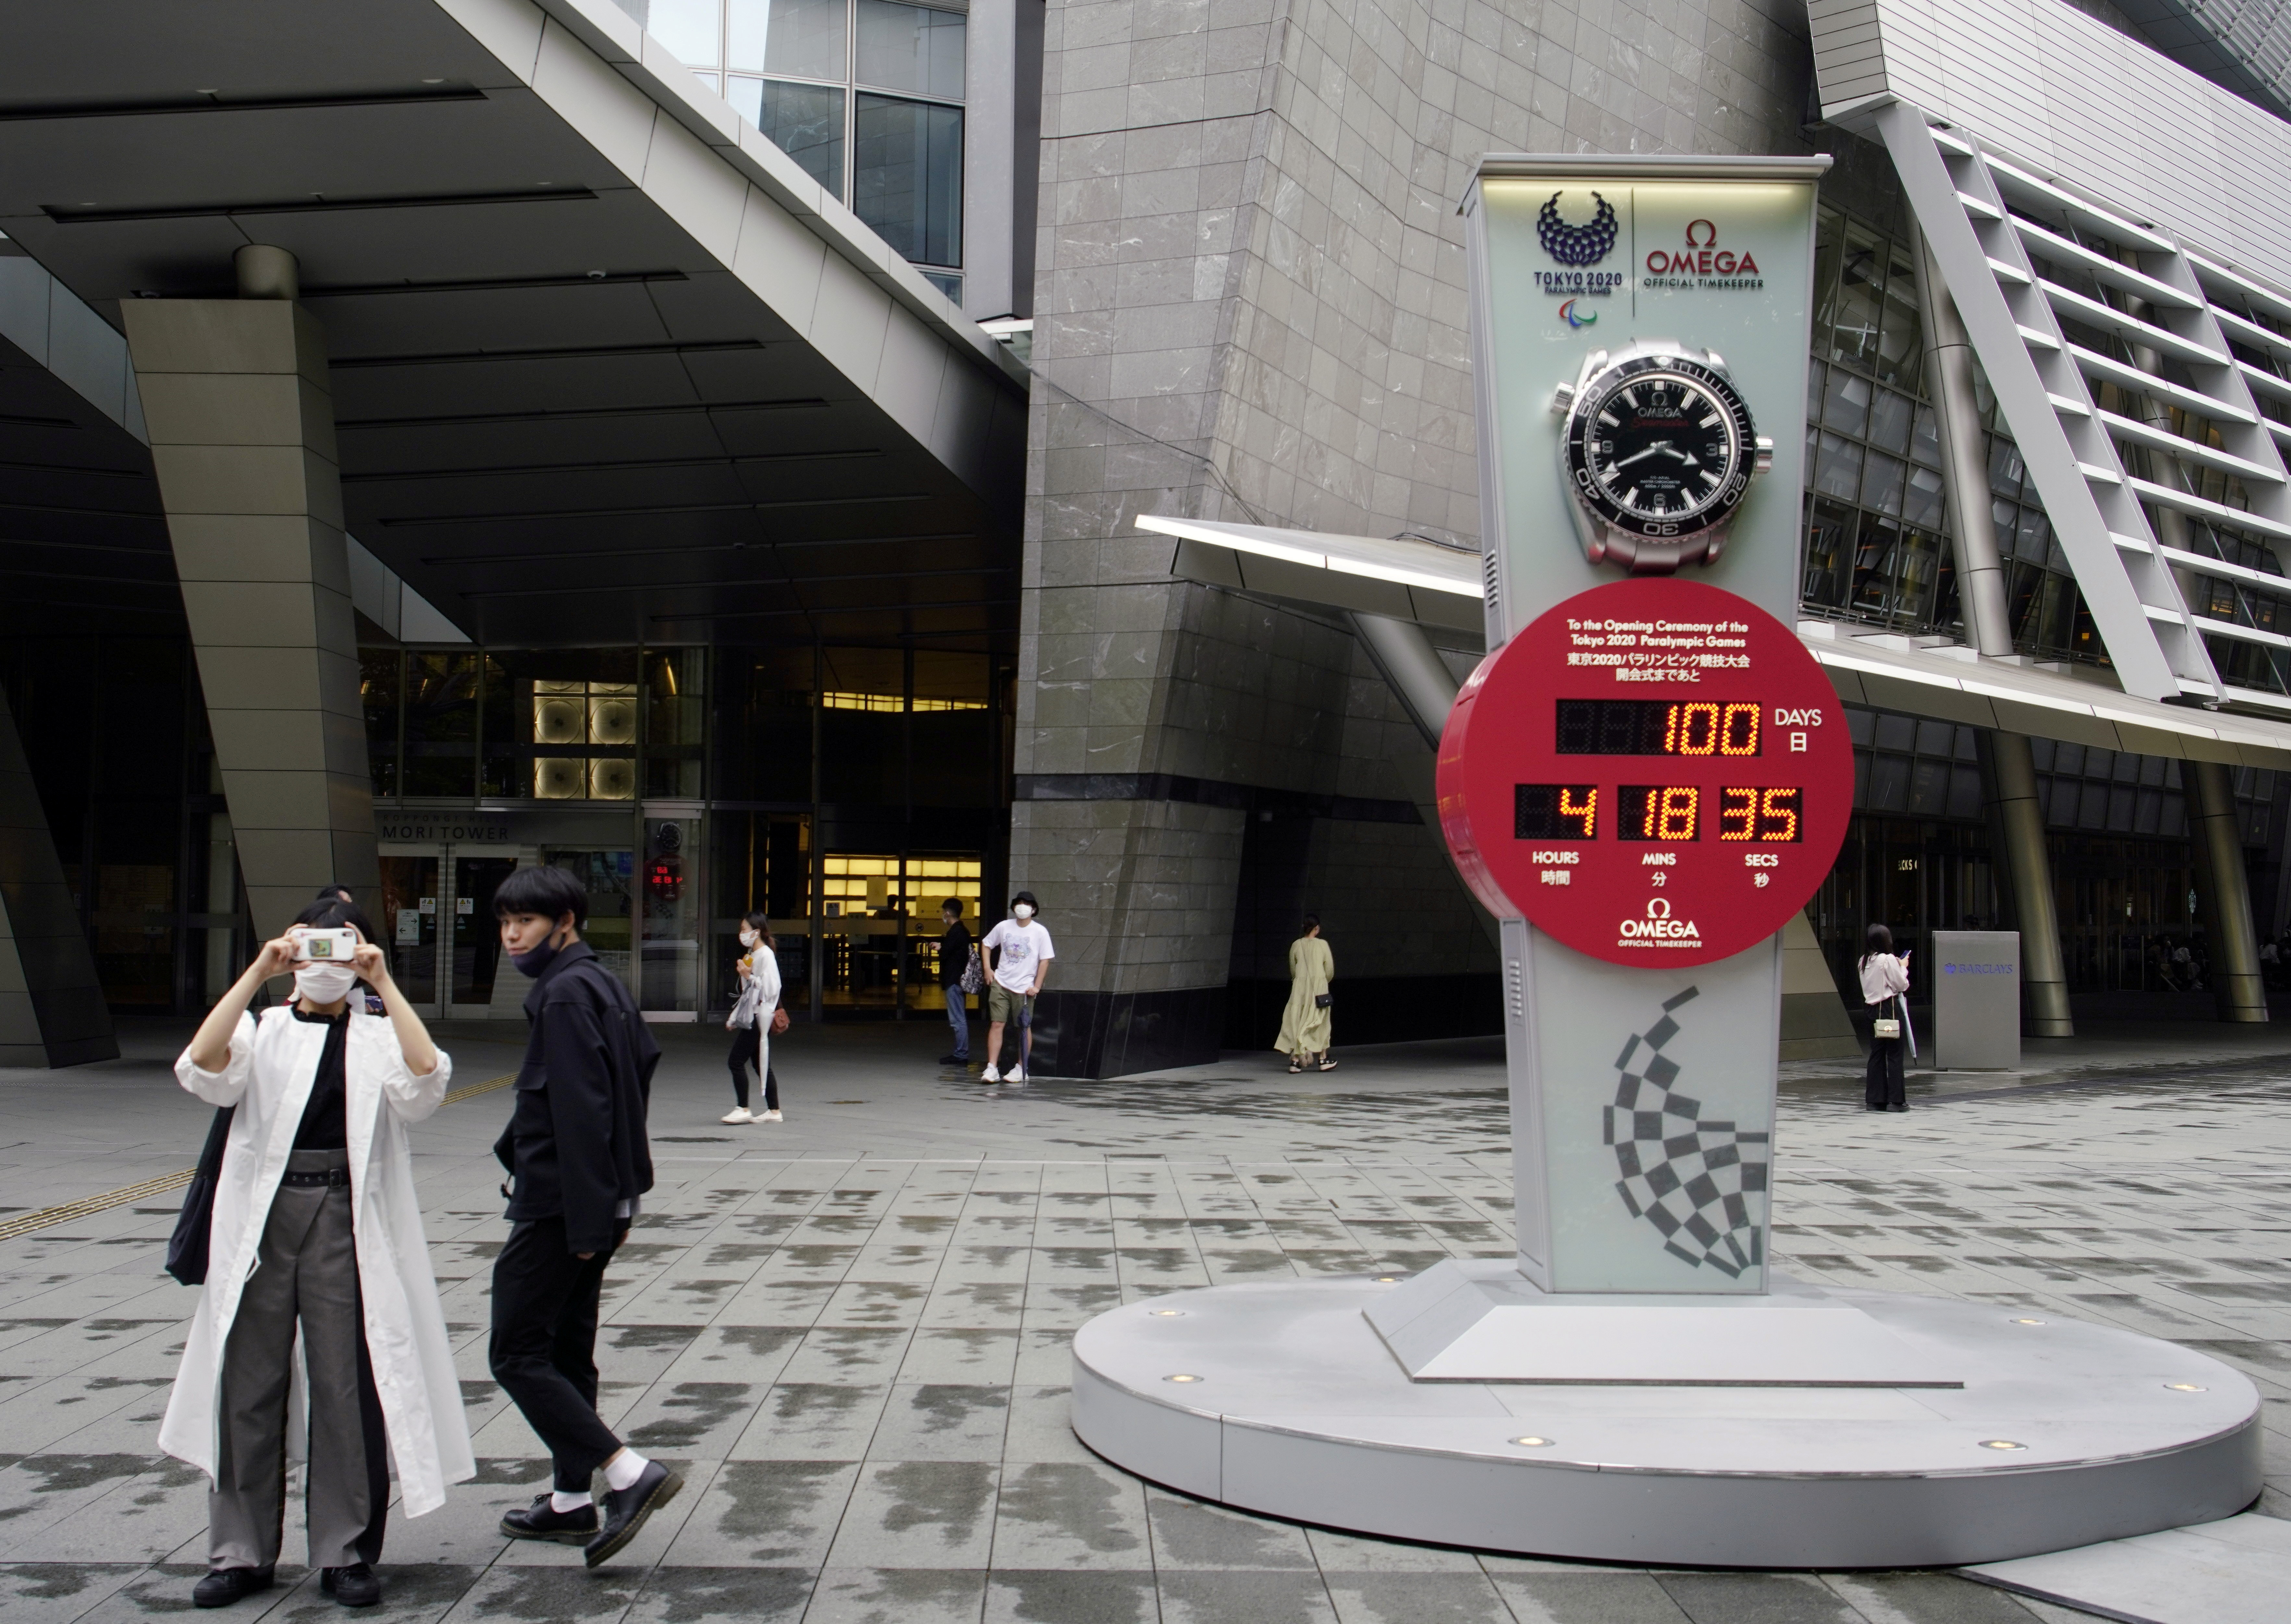 A countdown clock for the Tokyo 2020 Paralympic Games, on the day to mark 100 days countdown to the summer games that have been postponed to 2021 due to the coronavirus disease (COVID-19) outbreak, is seen in Tokyo, Japan May 16, 2021. REUTERS/Naoki Ogura